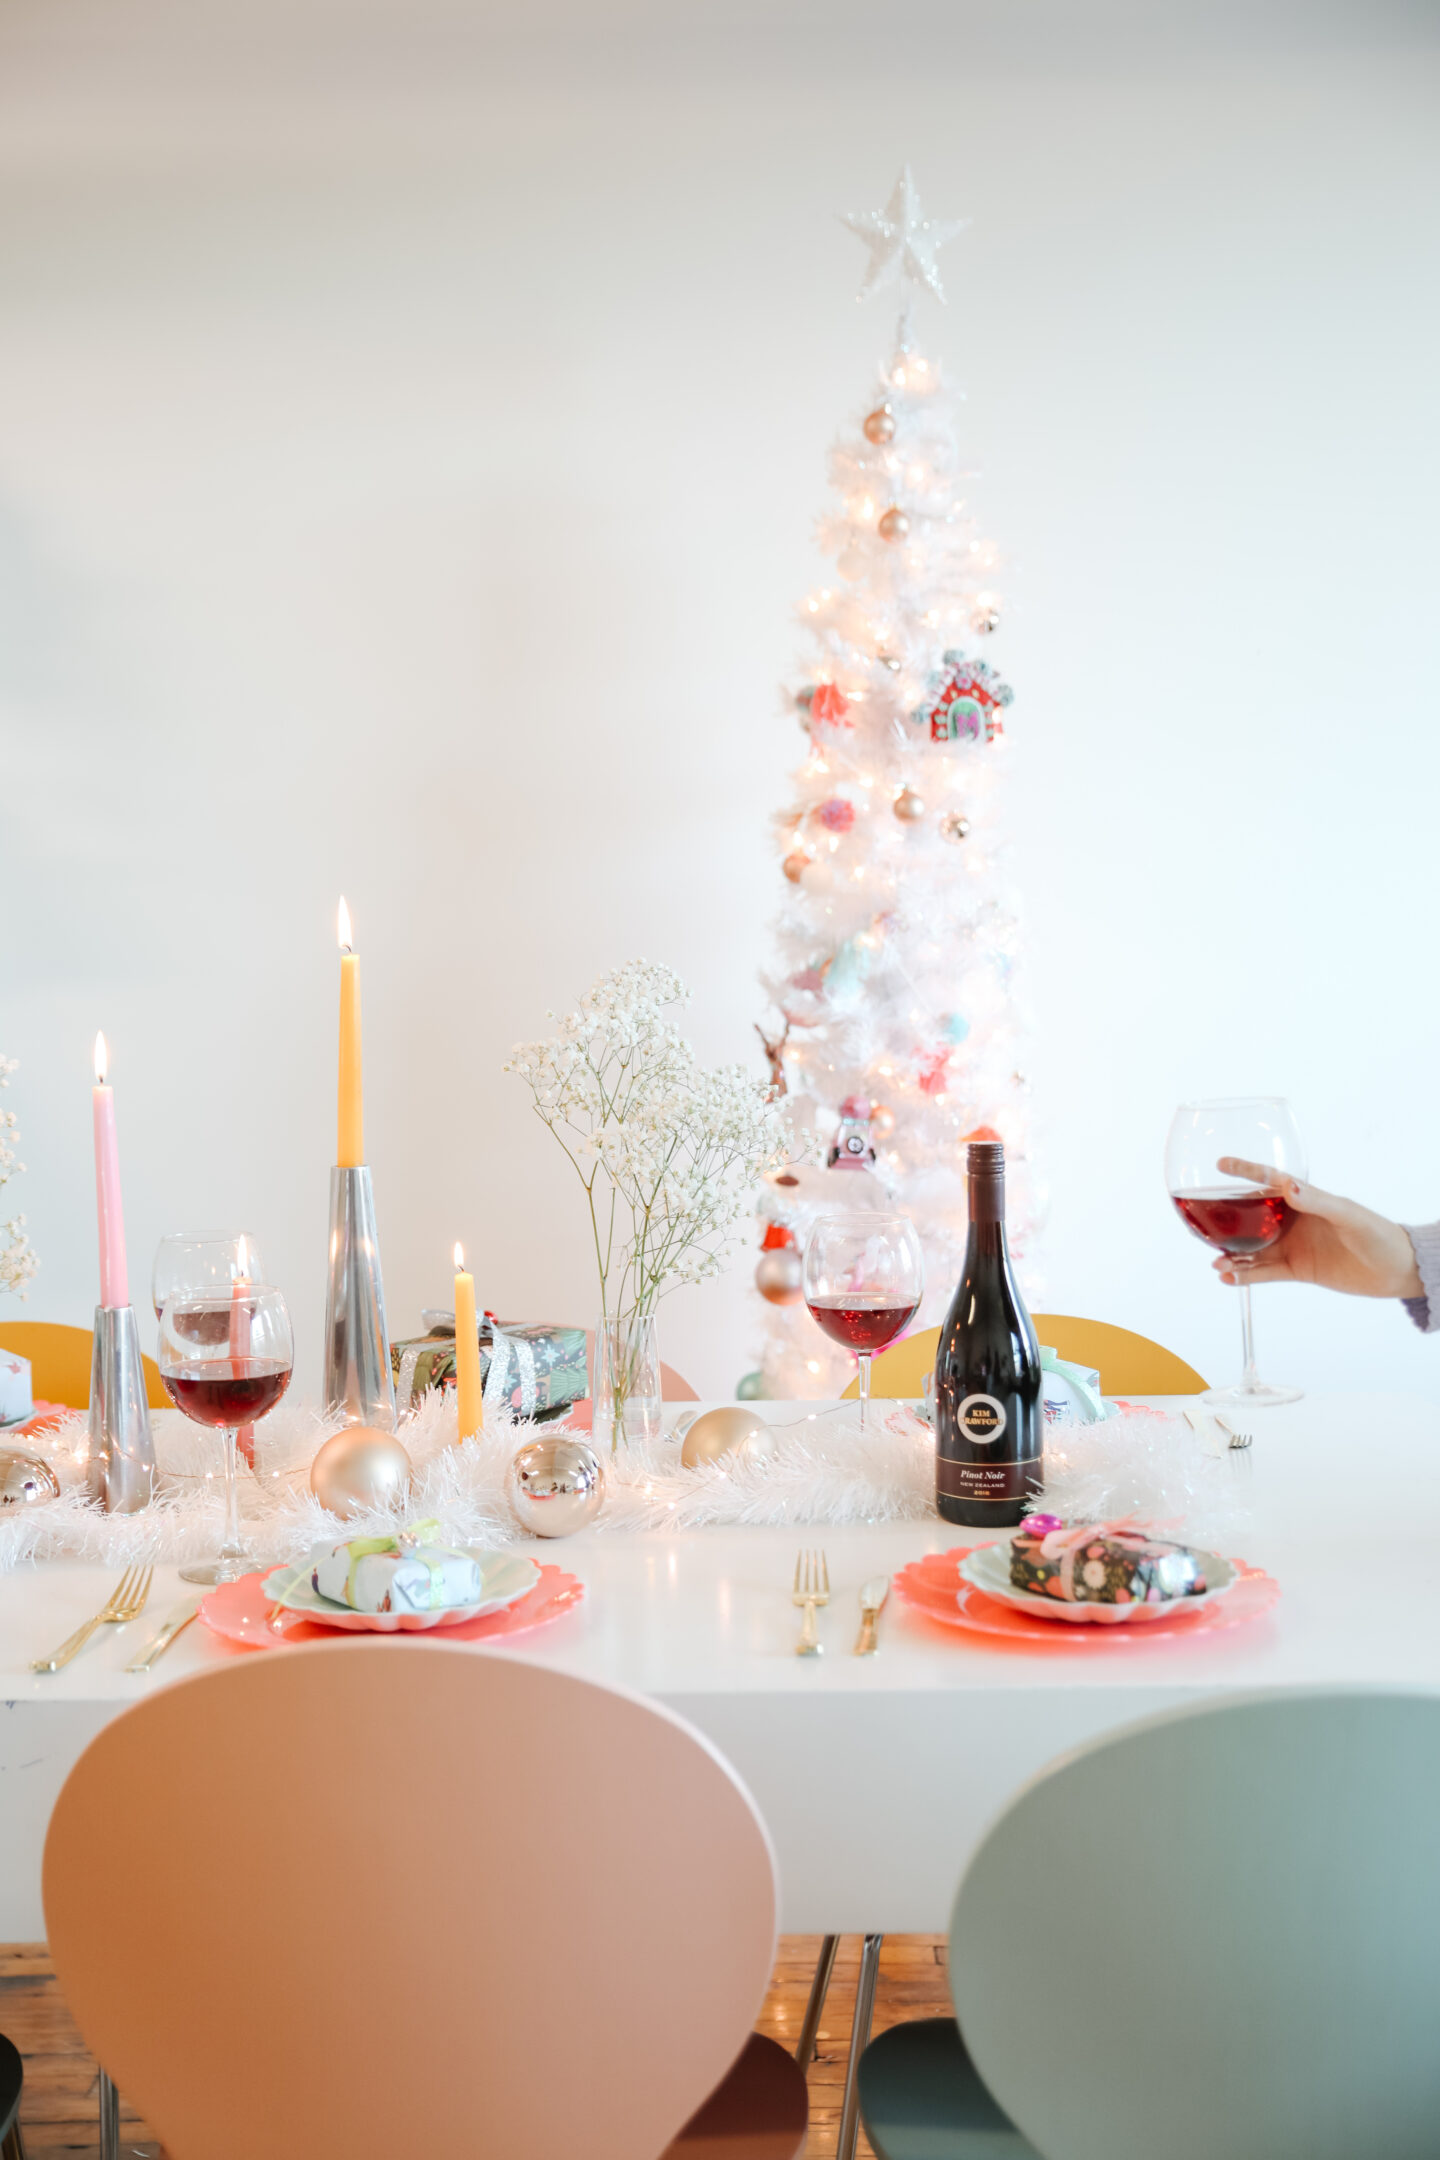 Tablescape Ideas for Holidays